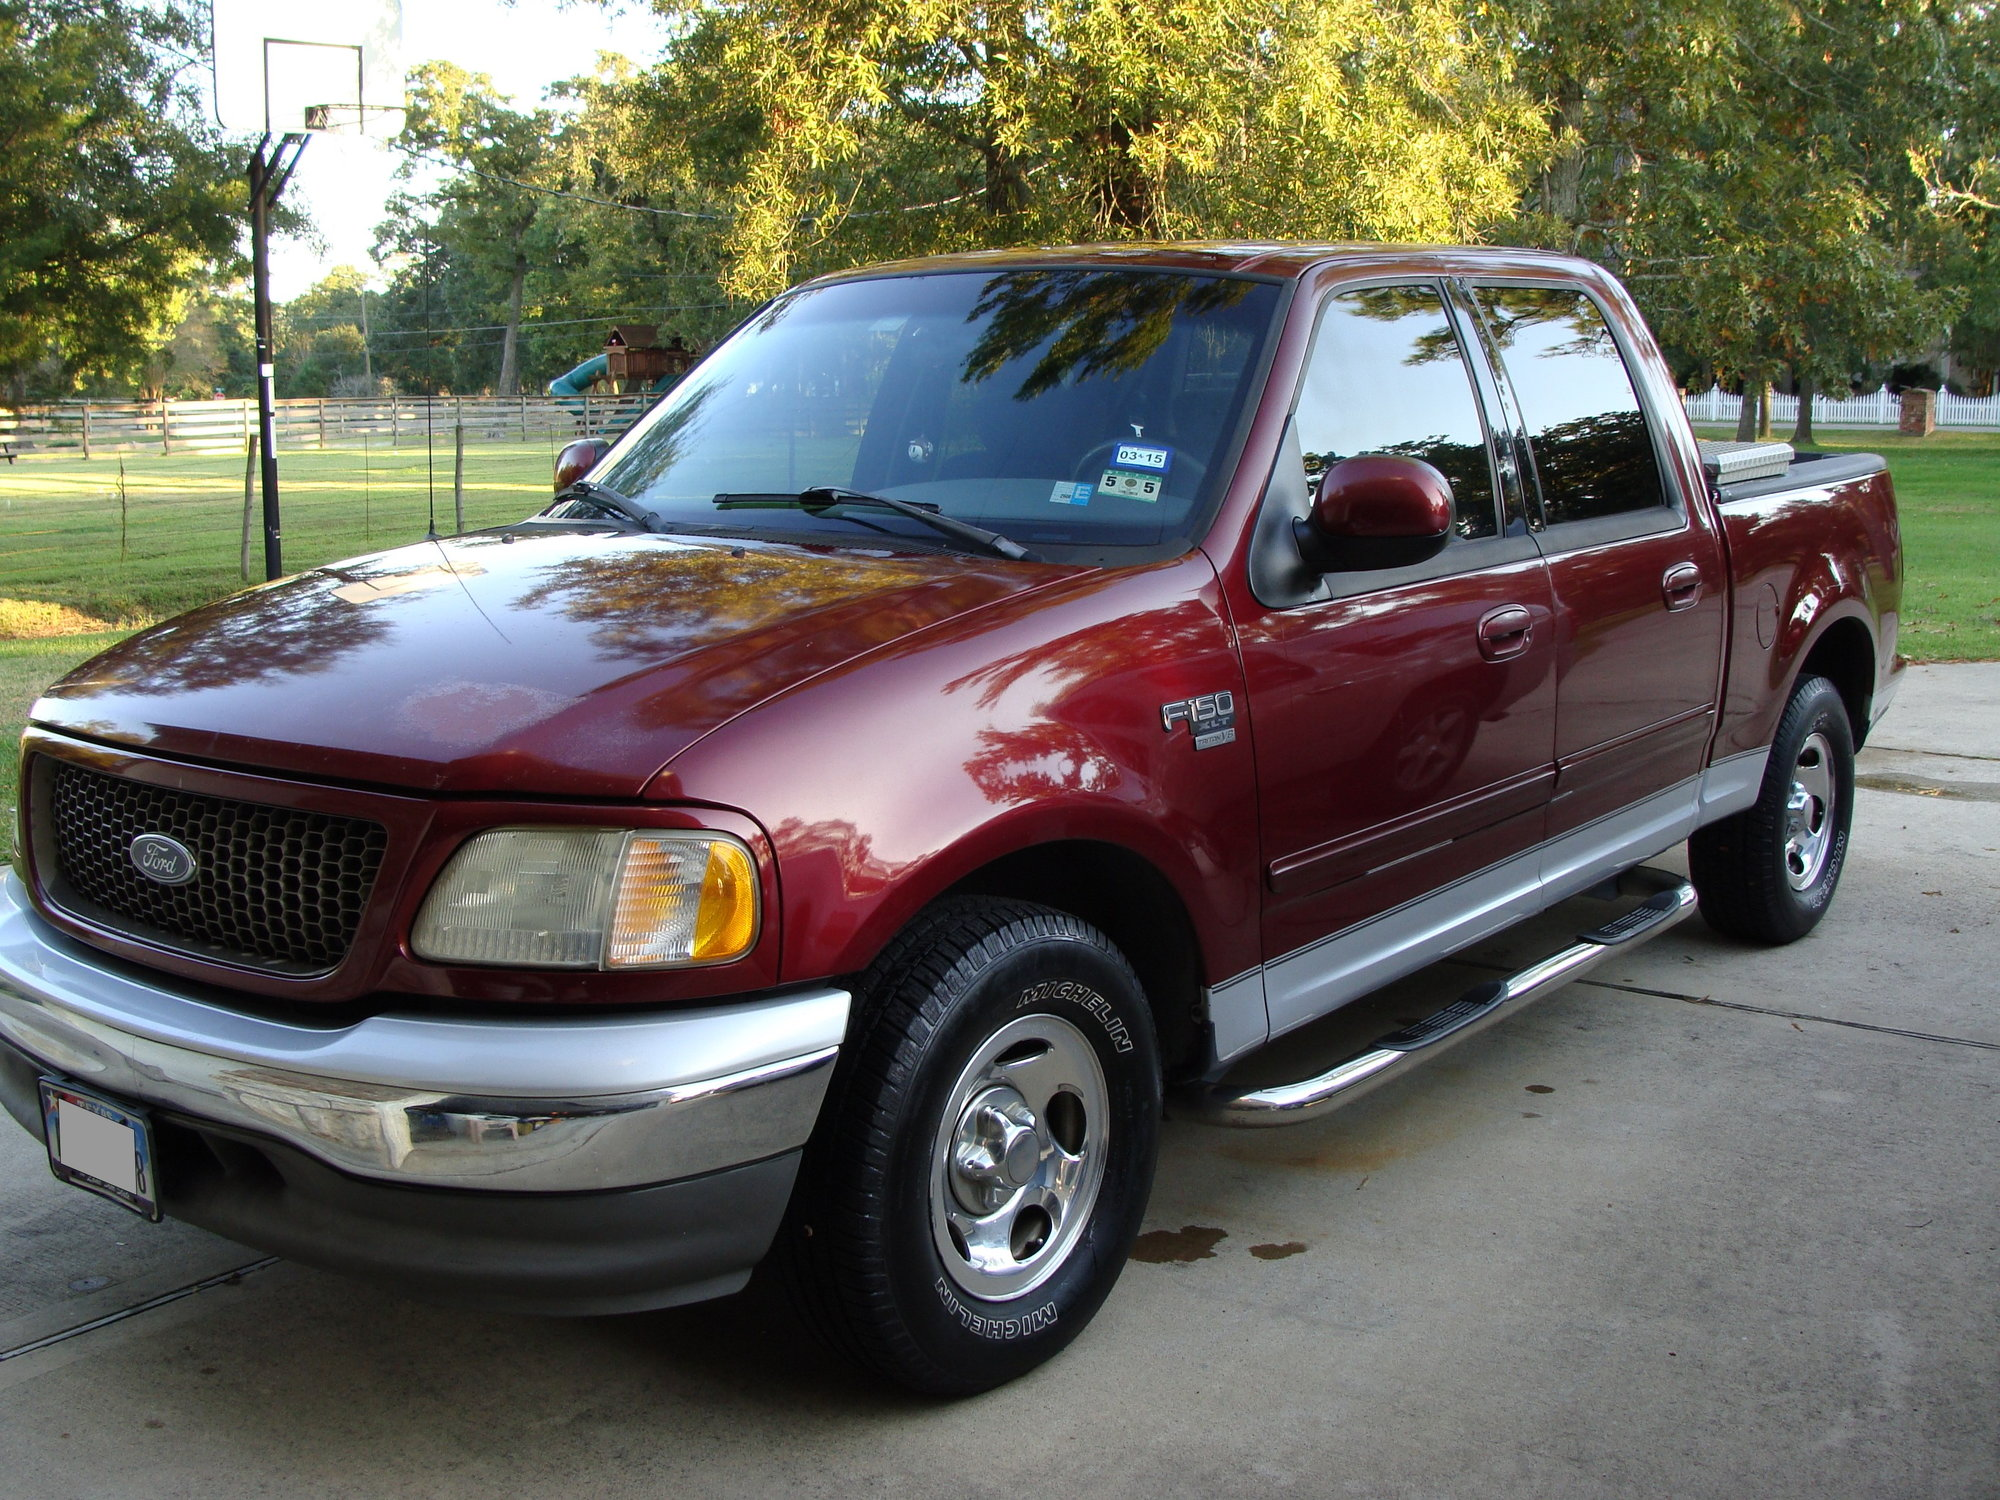 2003 Ford F 150 Supercrew Xlt Truck Enthusiasts Forums F150 L V8 Private Or Dealer Listing Location State Tx Transmission Automatic Drivetrain Rear Wheel Drive Color Red Engine 46l Triton